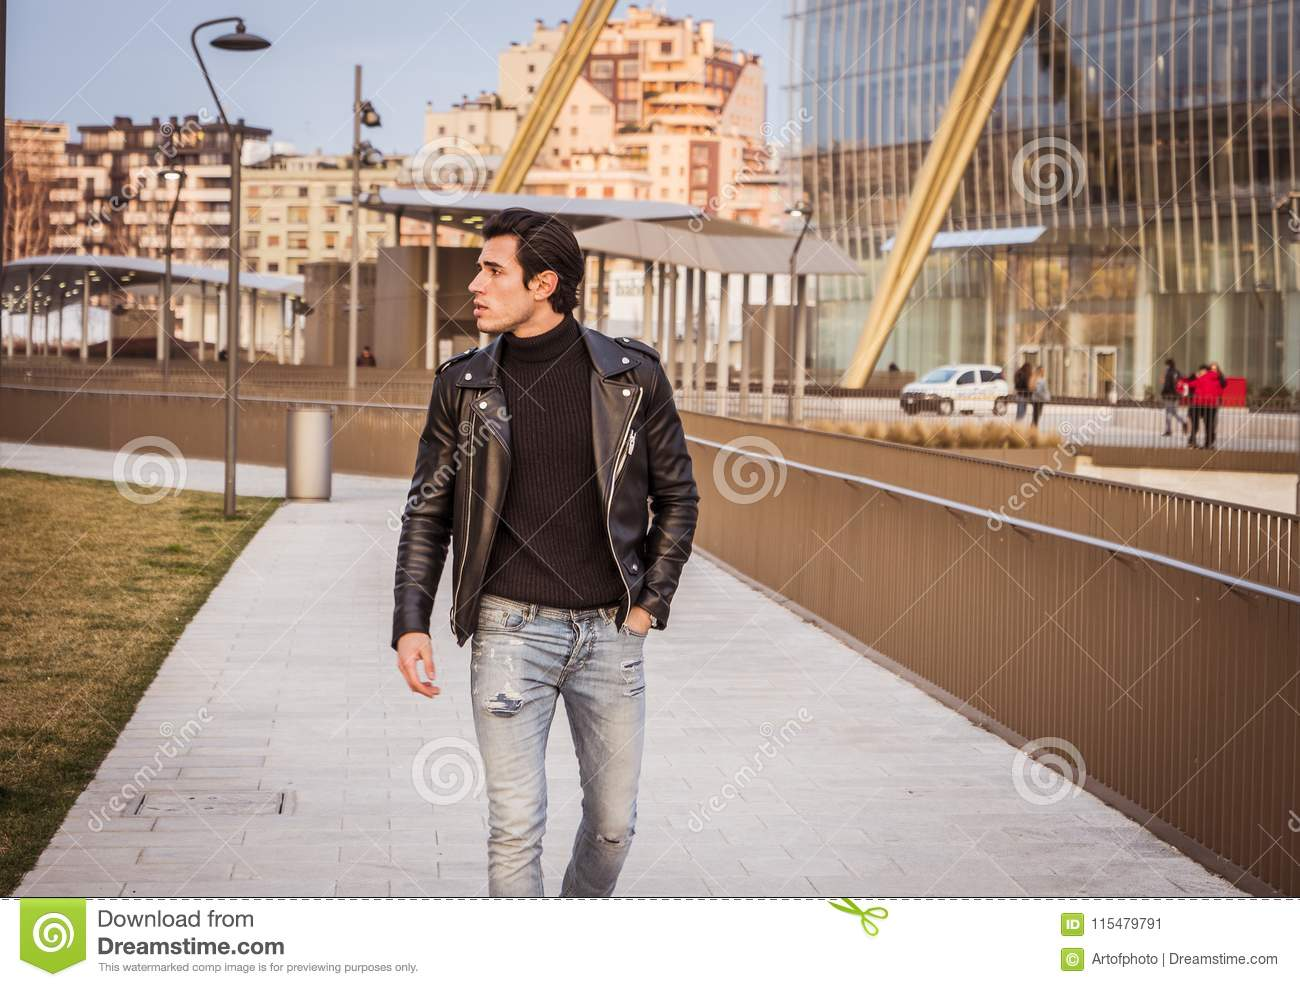 7ea6a8e1 One handsome young man in urban setting in modern city, standing, wearing  black leather jacket and jeans. More similar stock images